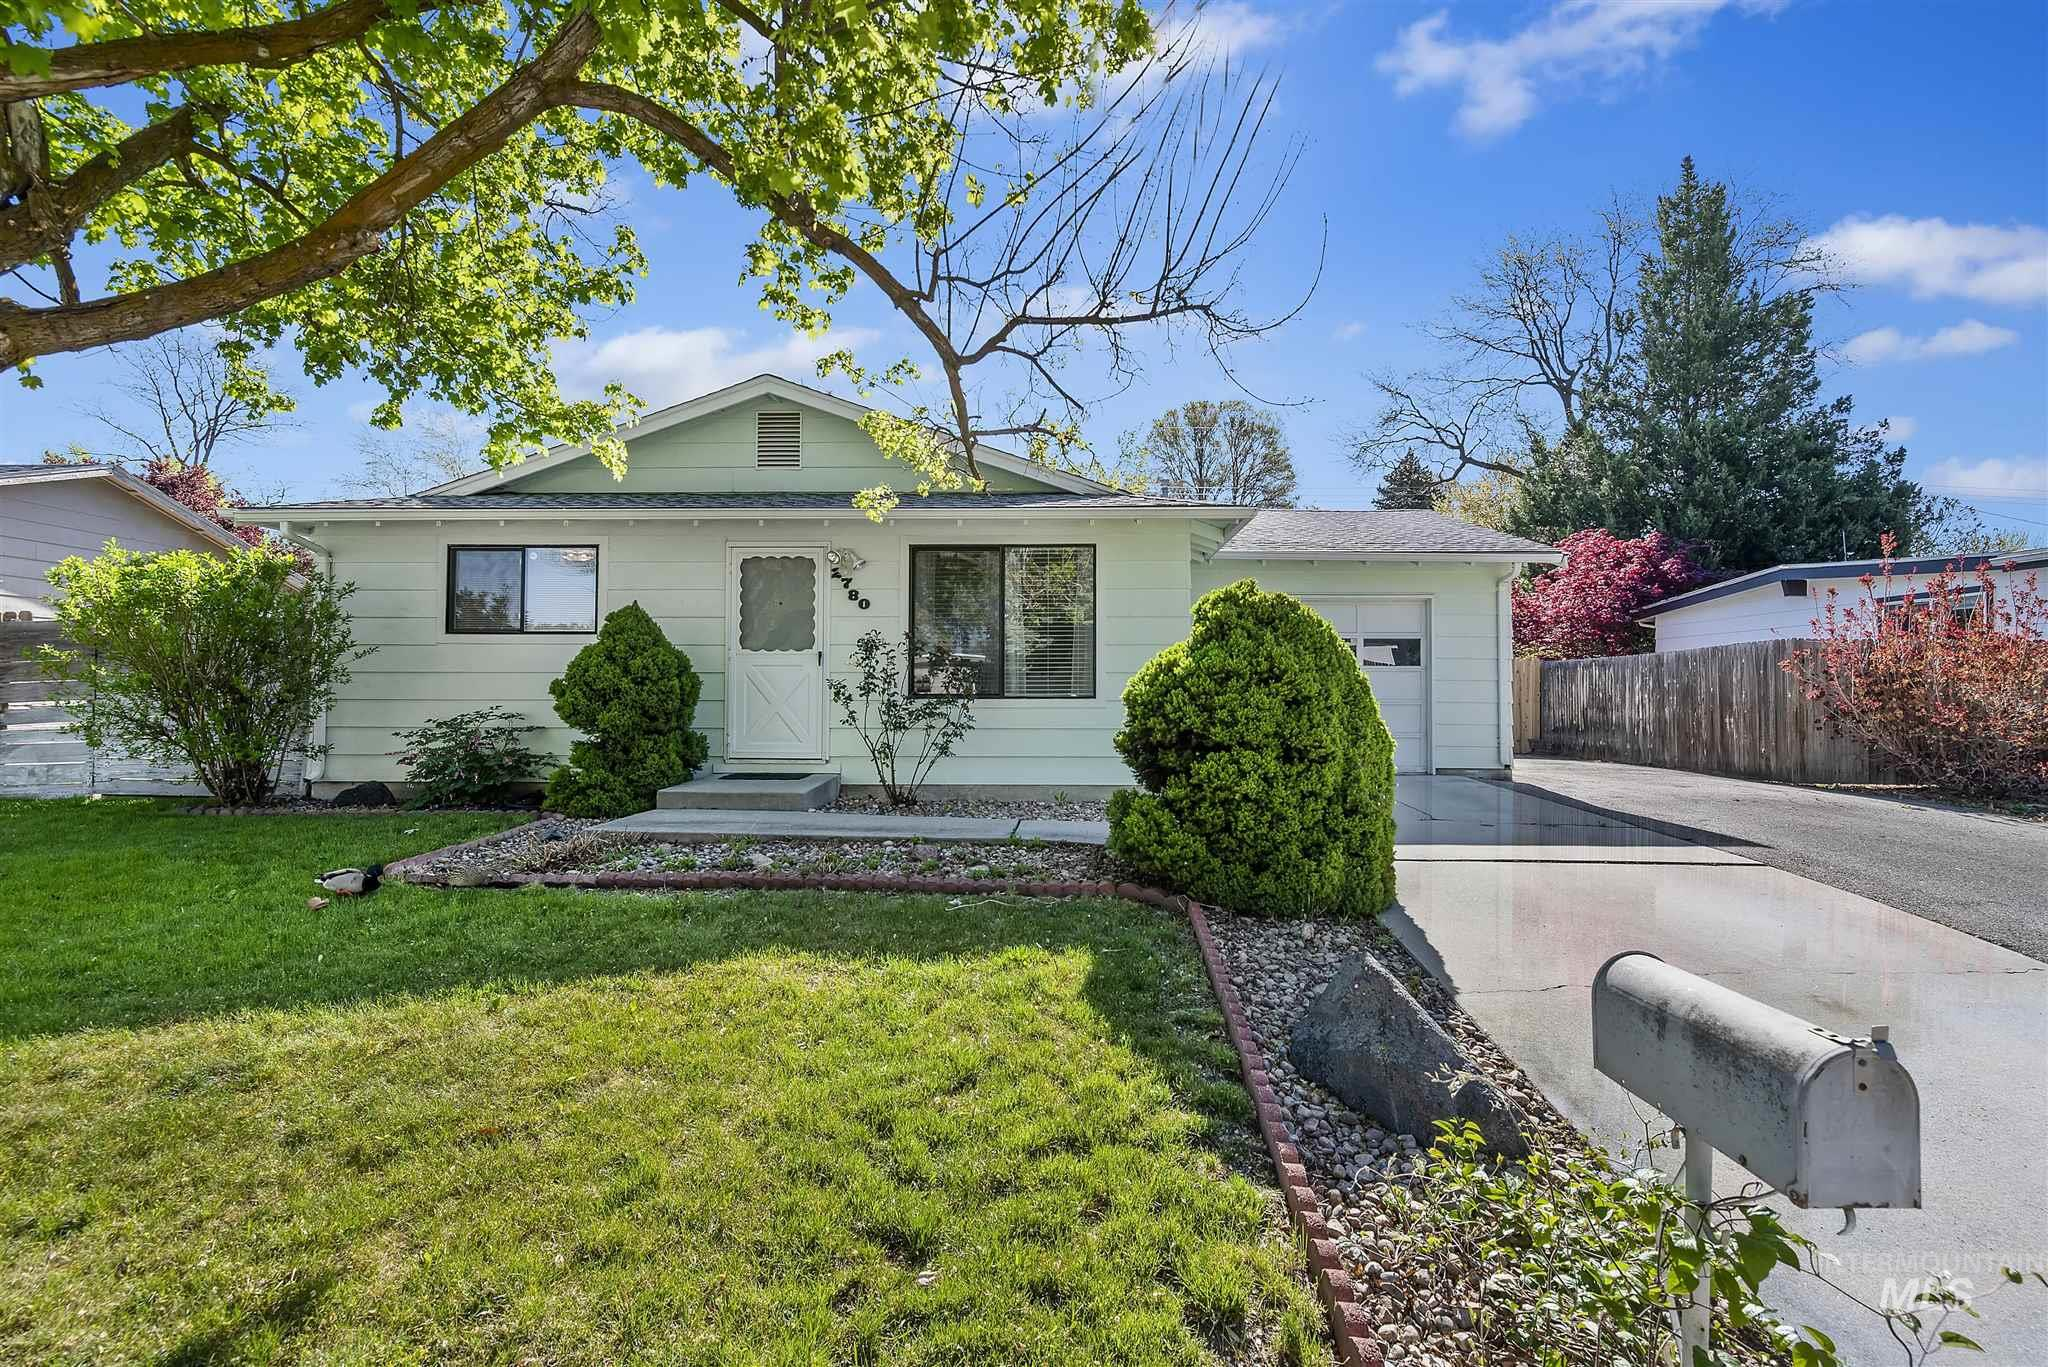 2780 N 38th St Property Photo - Boise, ID real estate listing